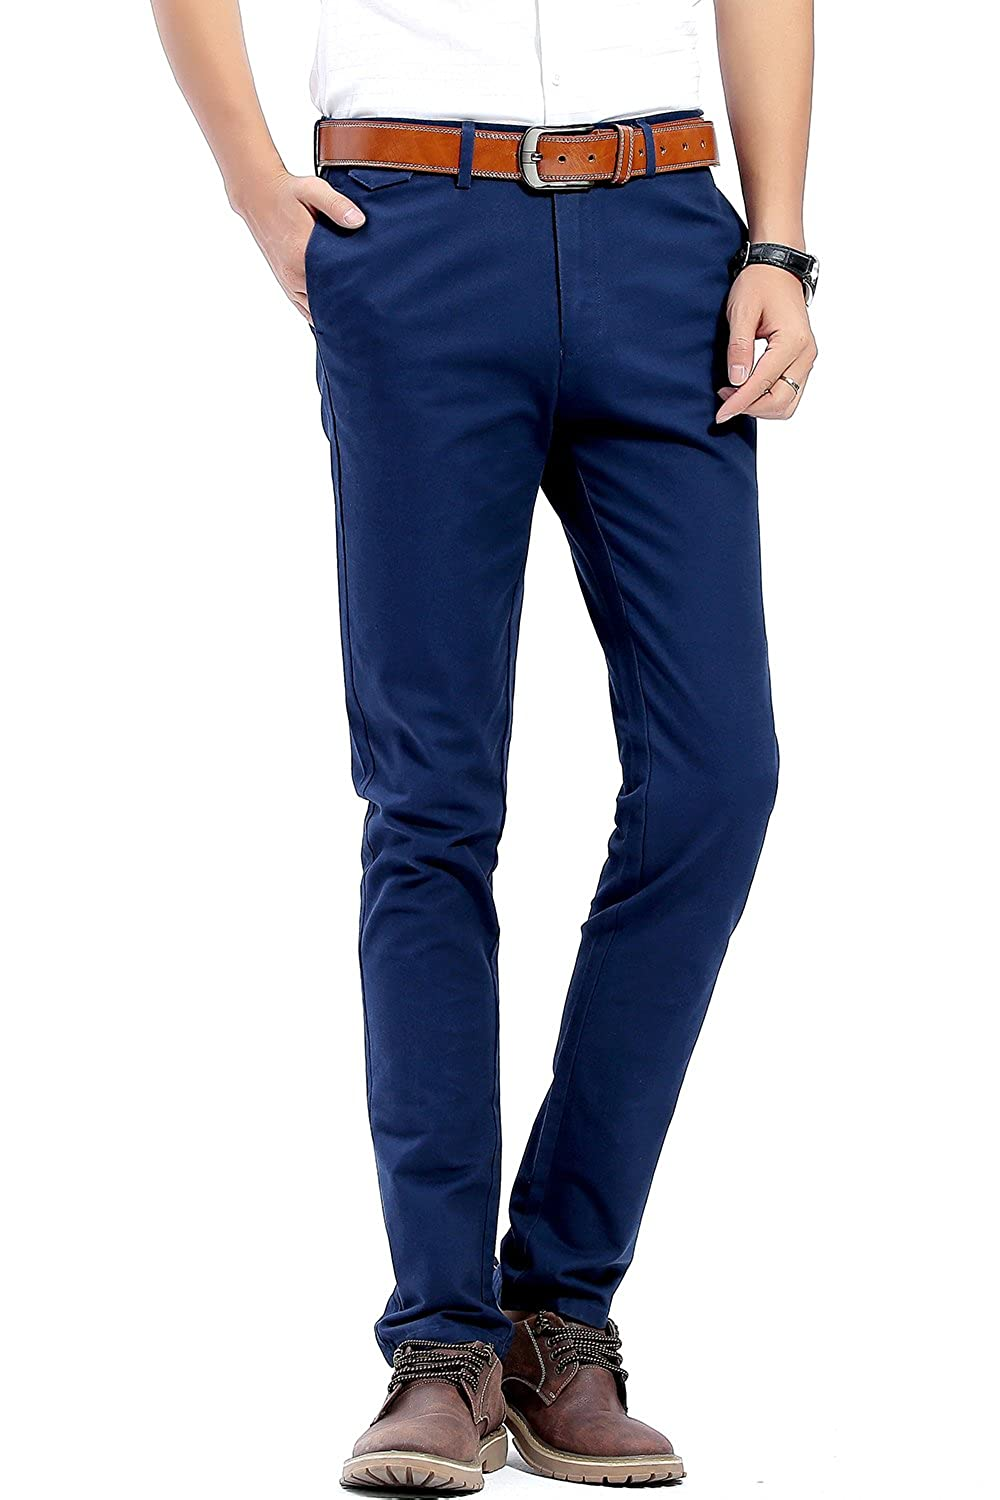 INFLATION Mens Stretchy Slim Fit Casual Pants,100/% Cotton Flat Front Trousers Dress Pants for Men